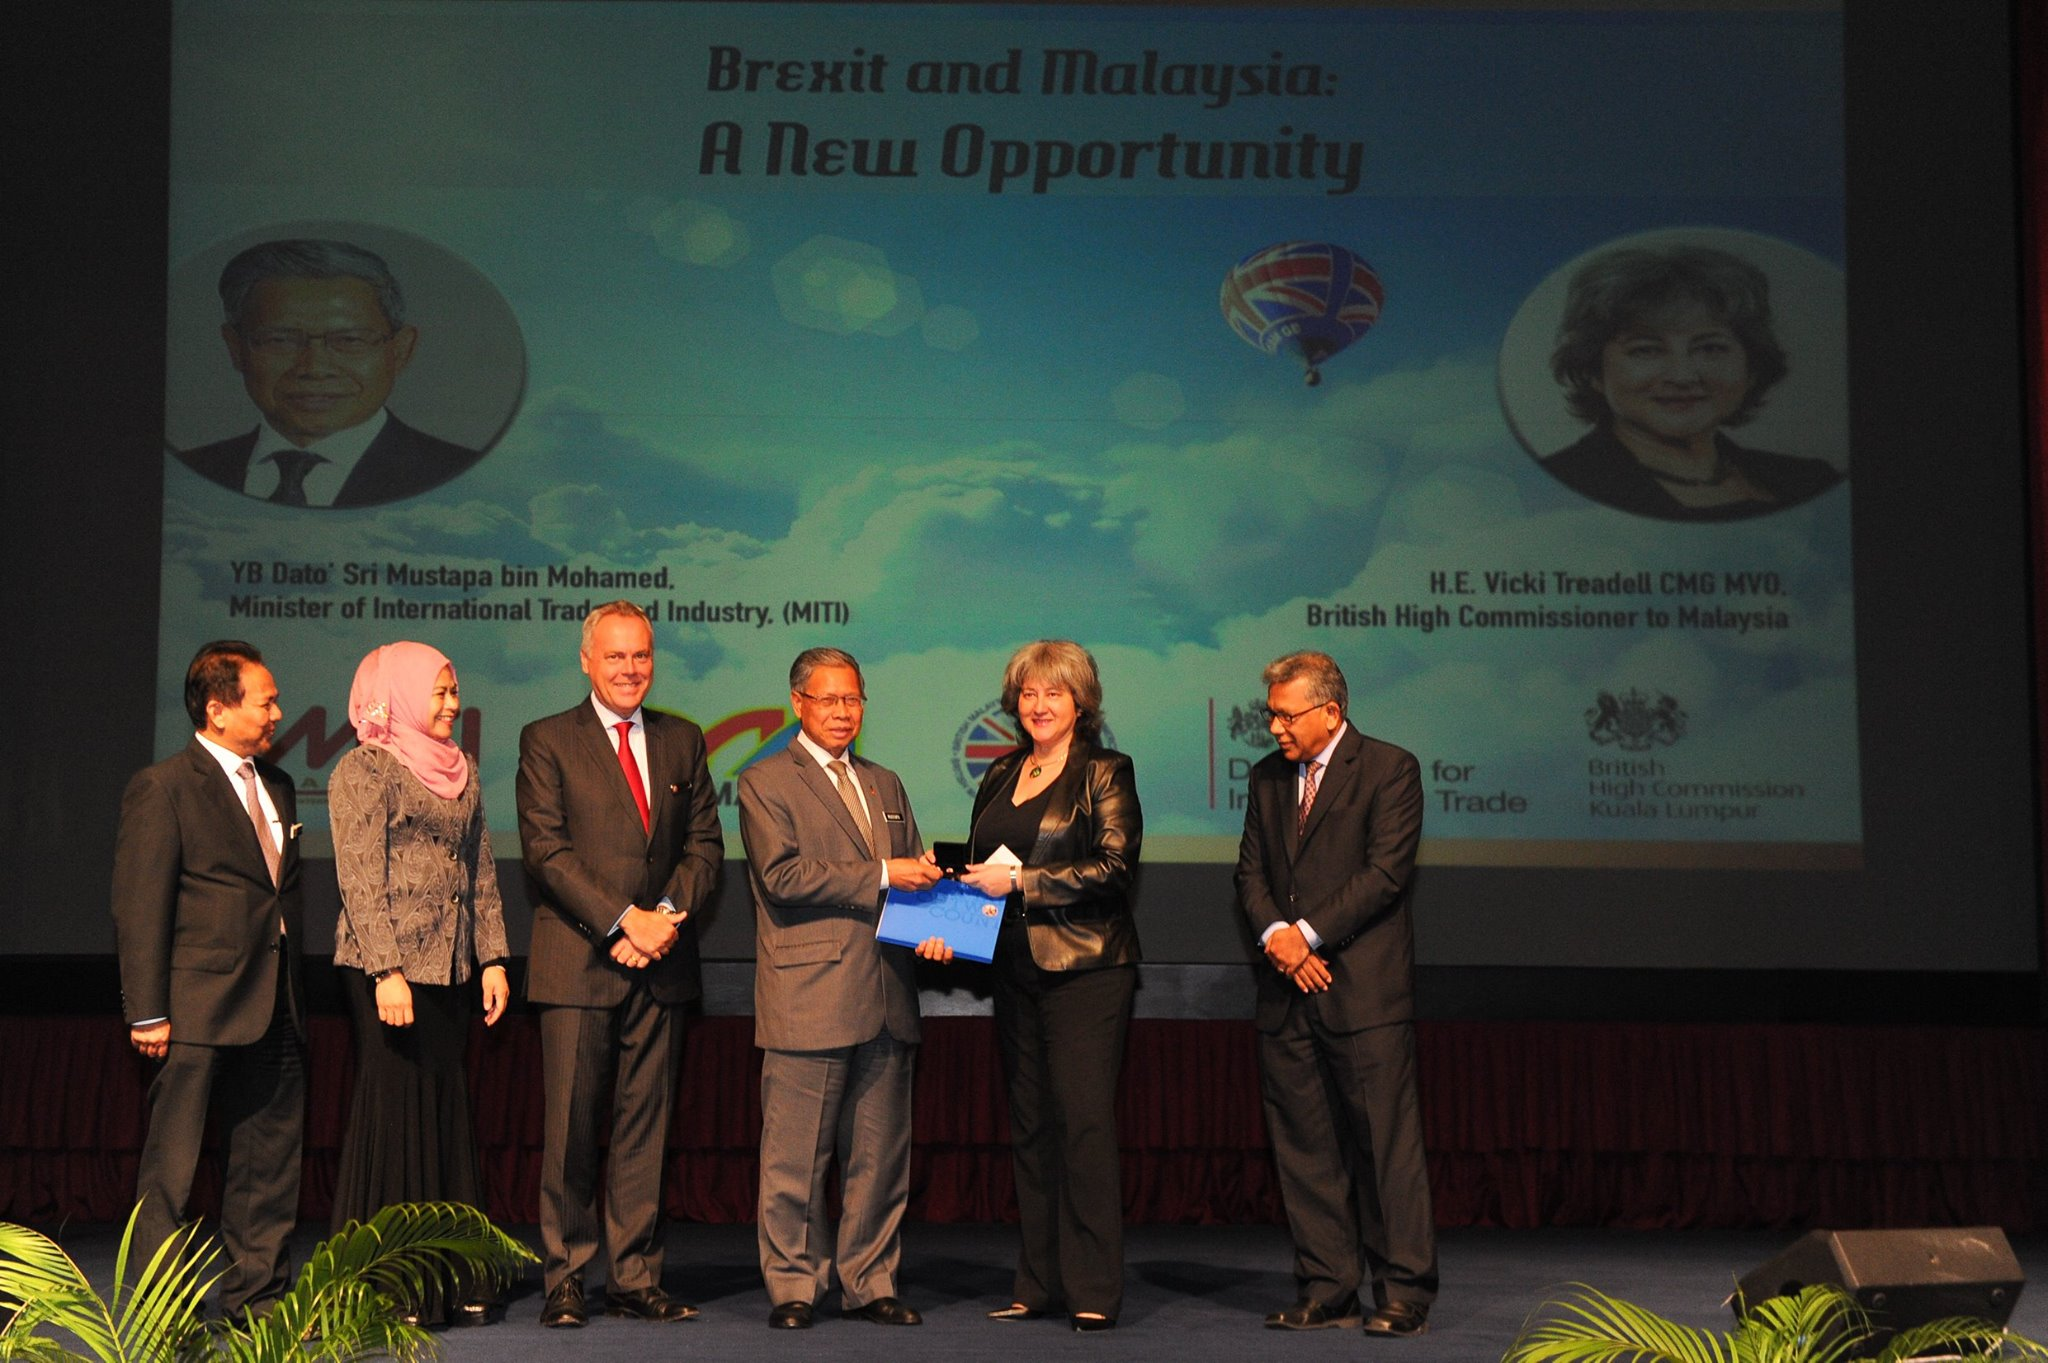 Brexit & Malaysia: A New Opportunity by BMCC and MATRADE